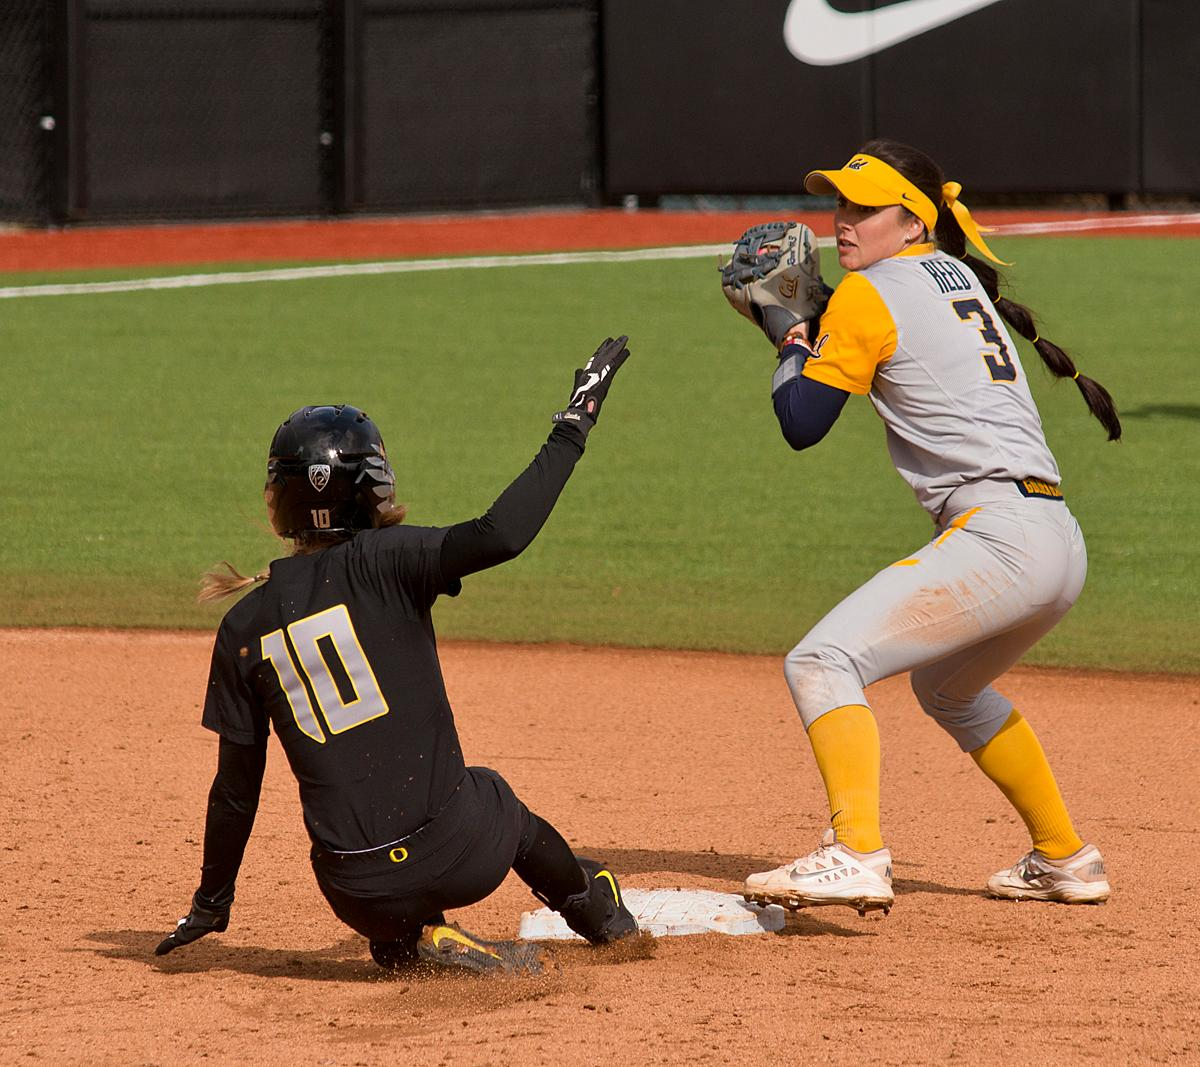 California Golden Bears second base player Kylie Reed (#3) turns a double play after getting Oregon Ducks Alexis Mack (#10) out. The Ducks defeated the Golden Bears 2-1 in game two of a three-game series. Photo by Dan Morrison, Oregon News Lab